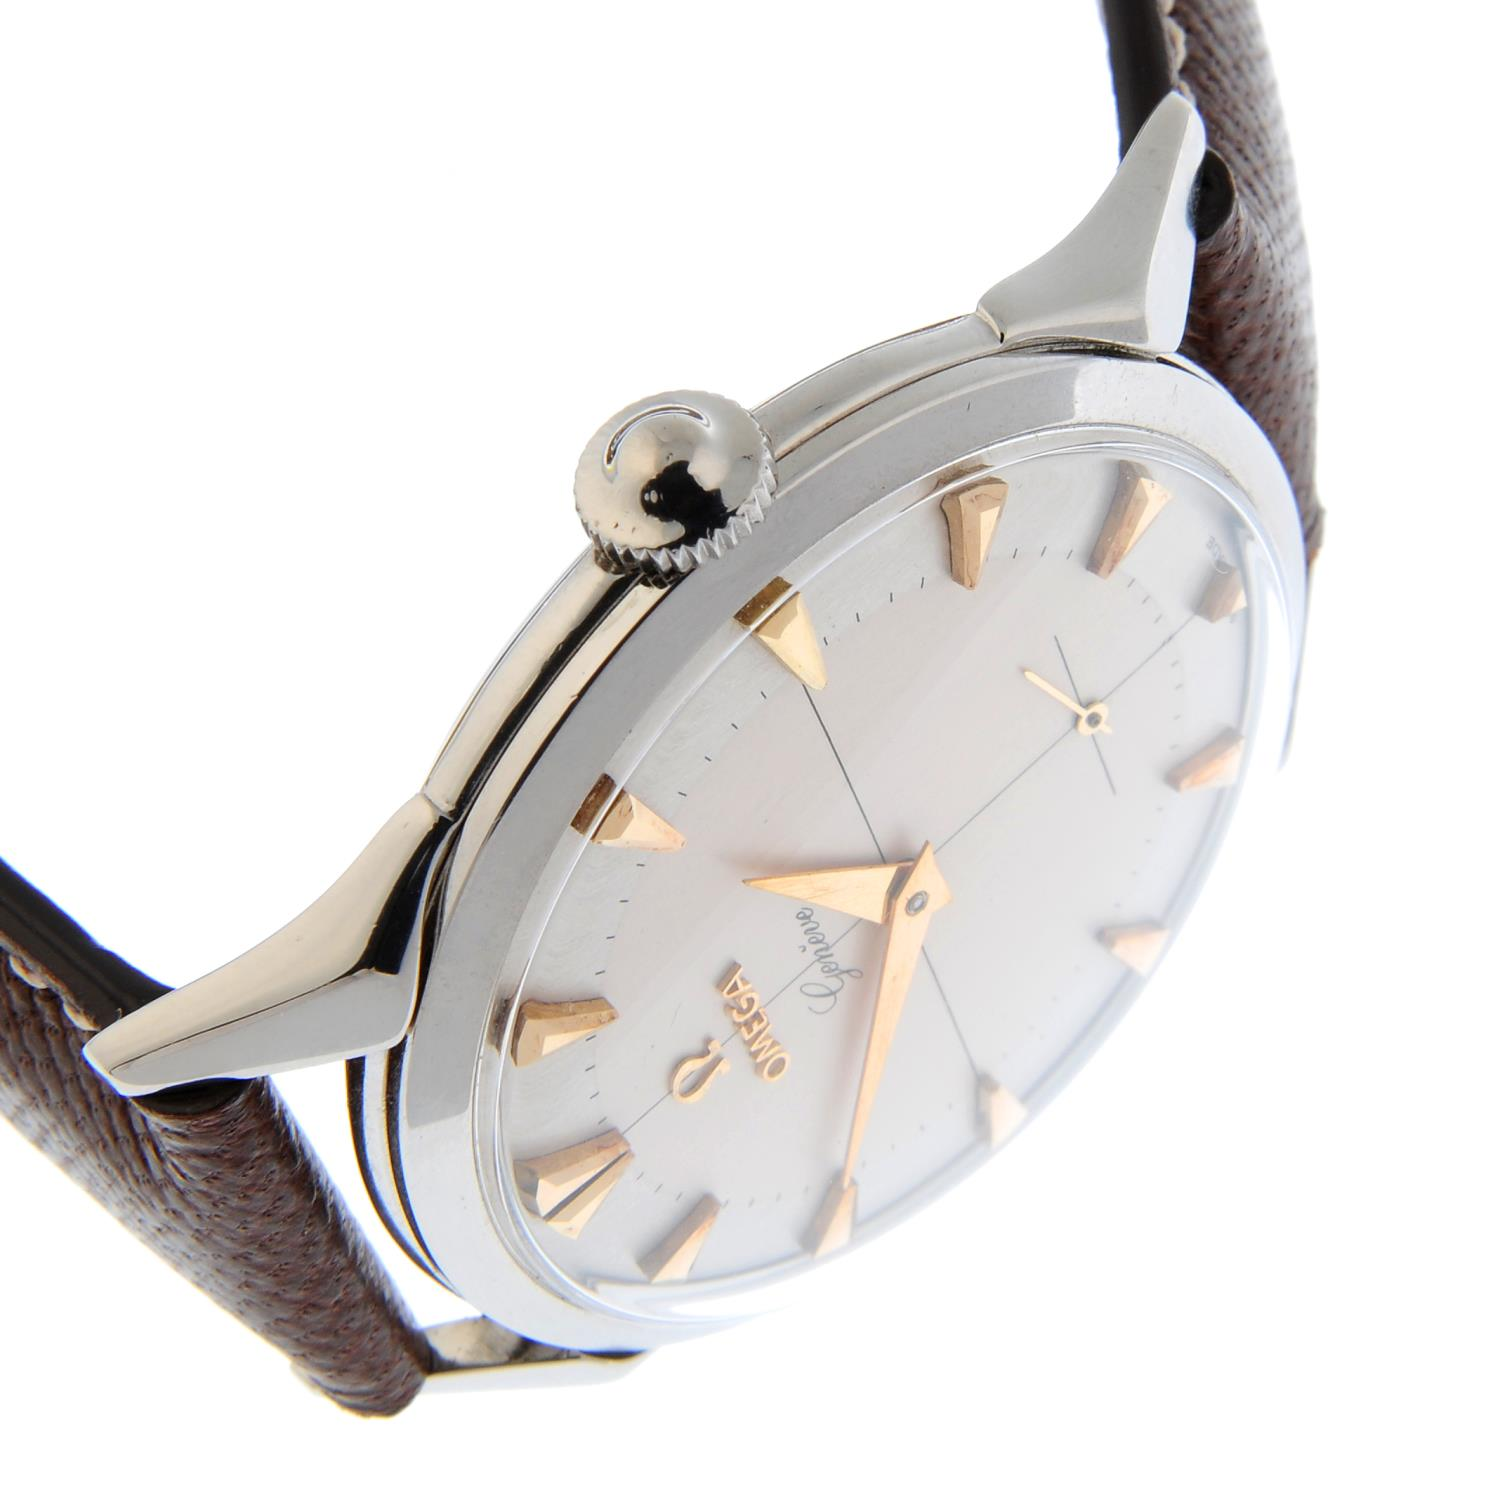 OMEGA - a Genève wrist watch. - Image 3 of 4